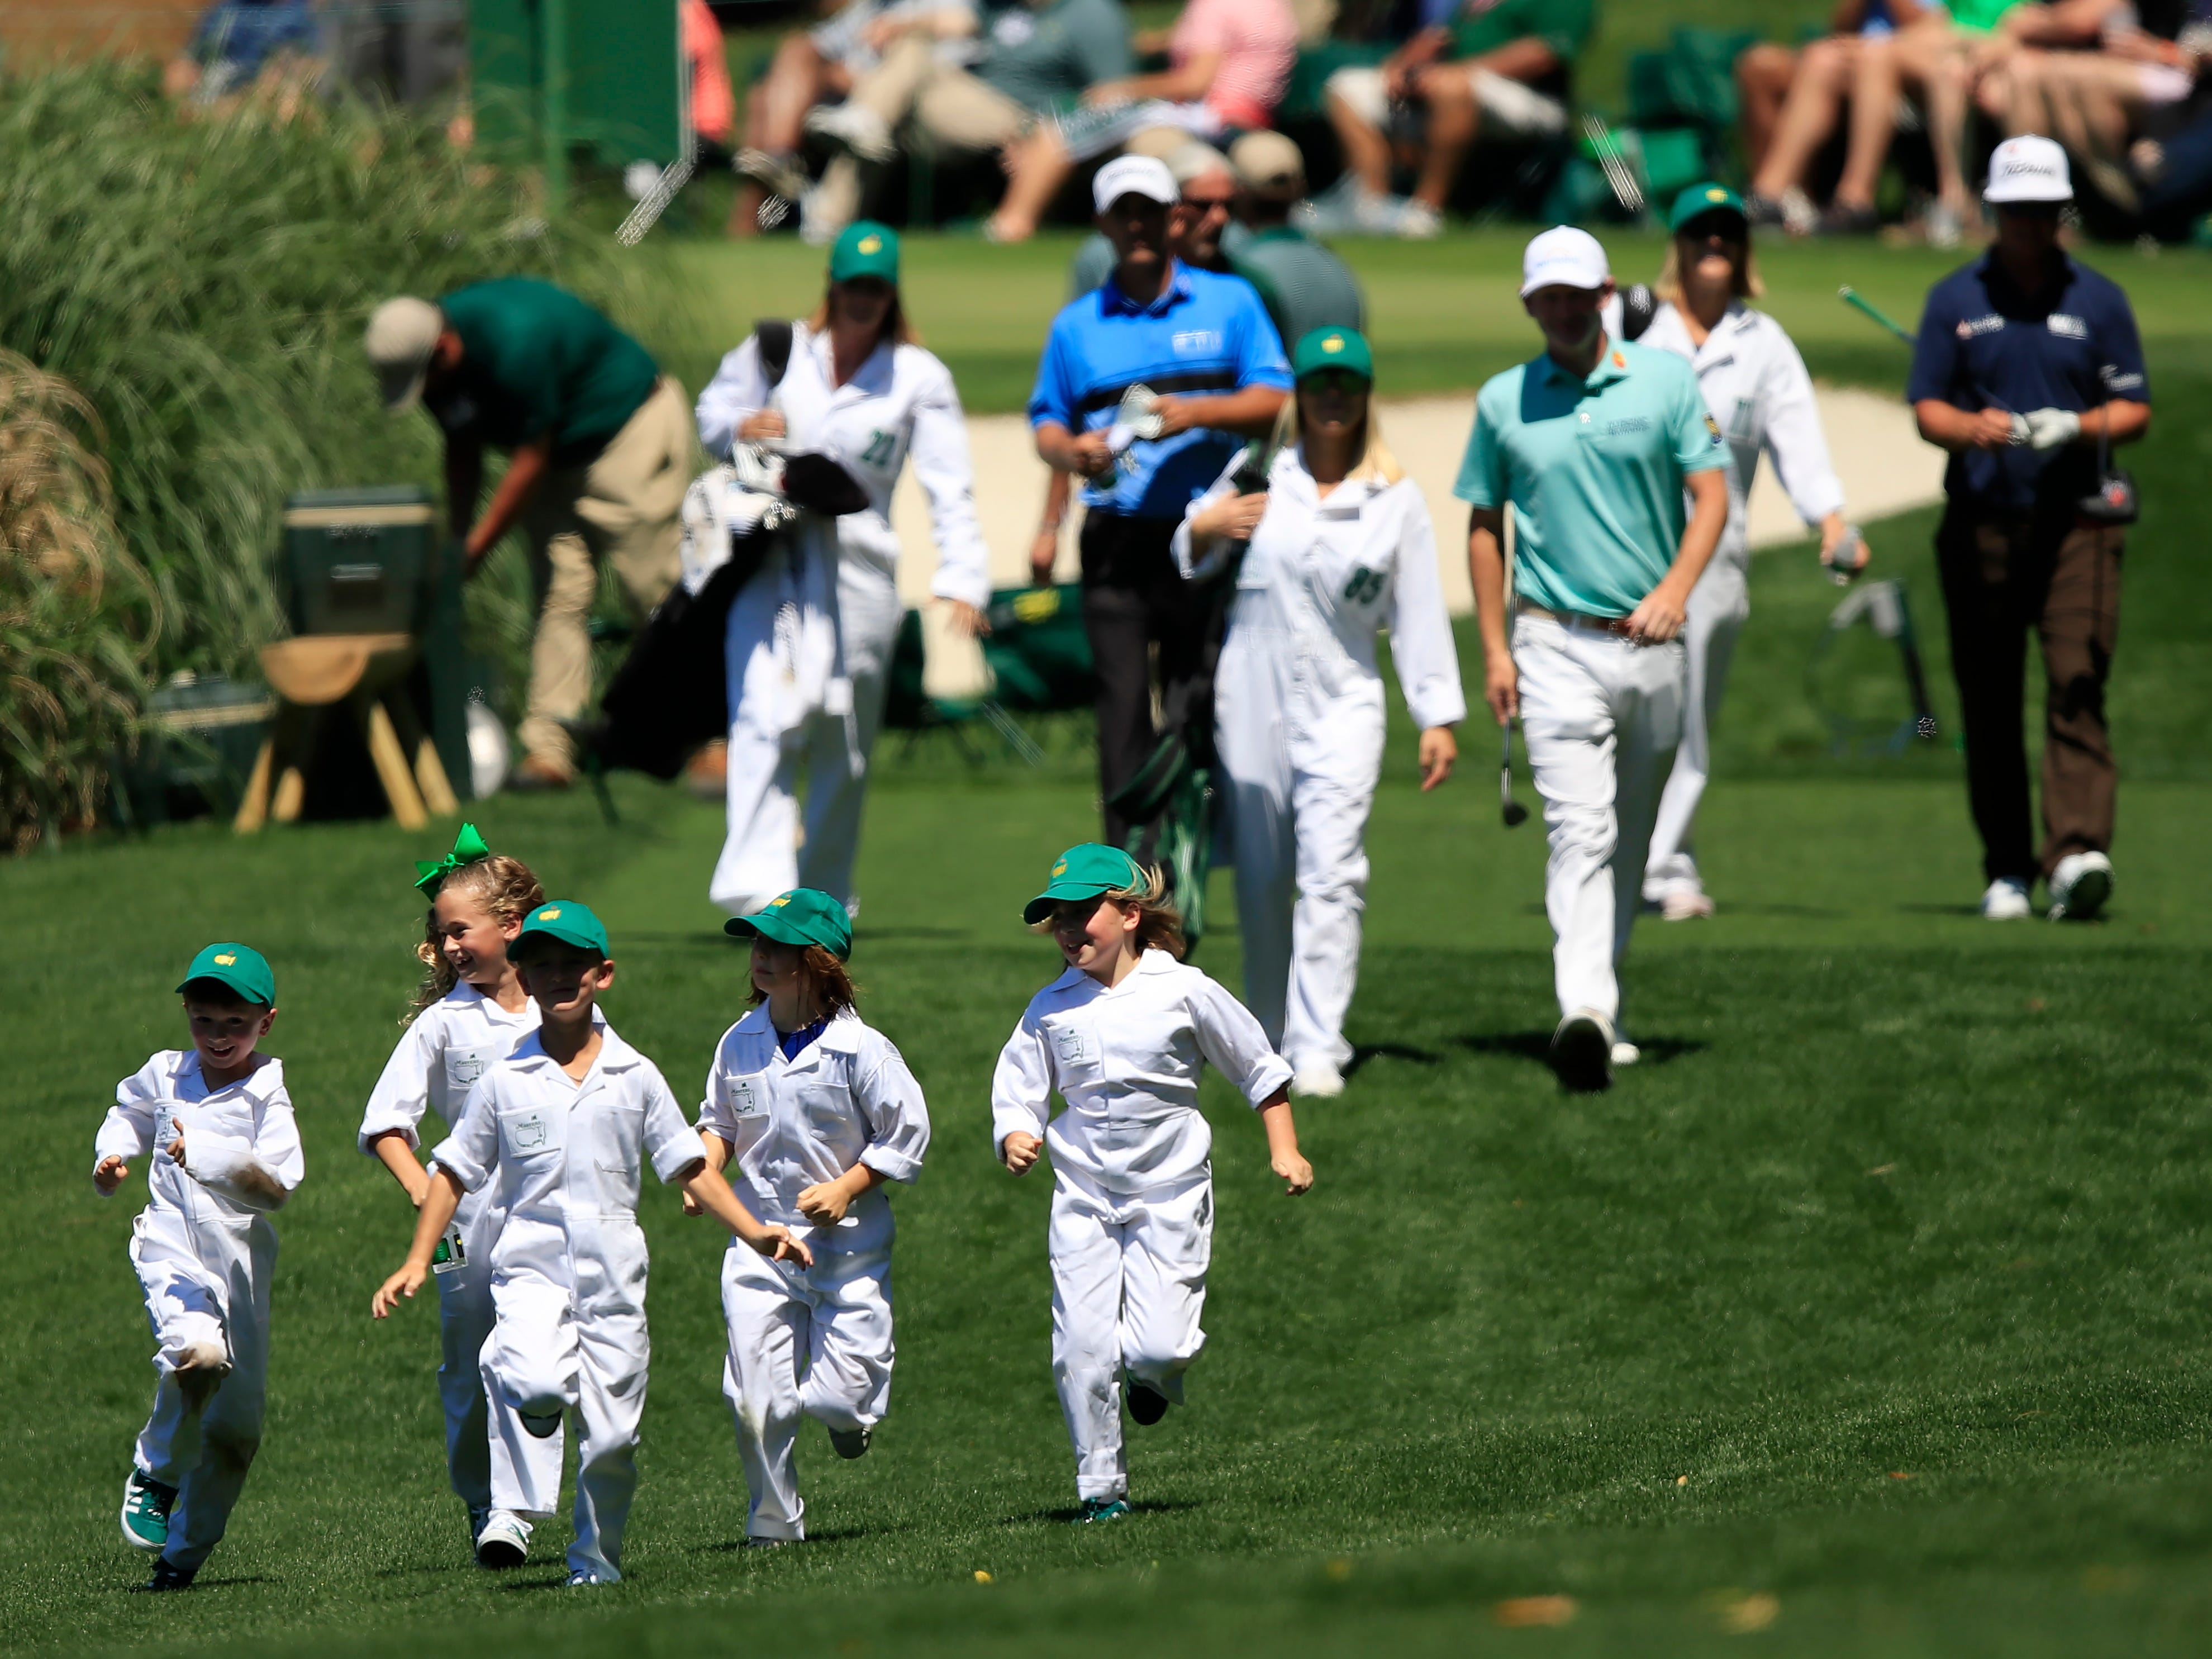 Children with the group of Charley Hoffman, Brandt Snedeker and Charles Howell III run ahead on the fifth hole.